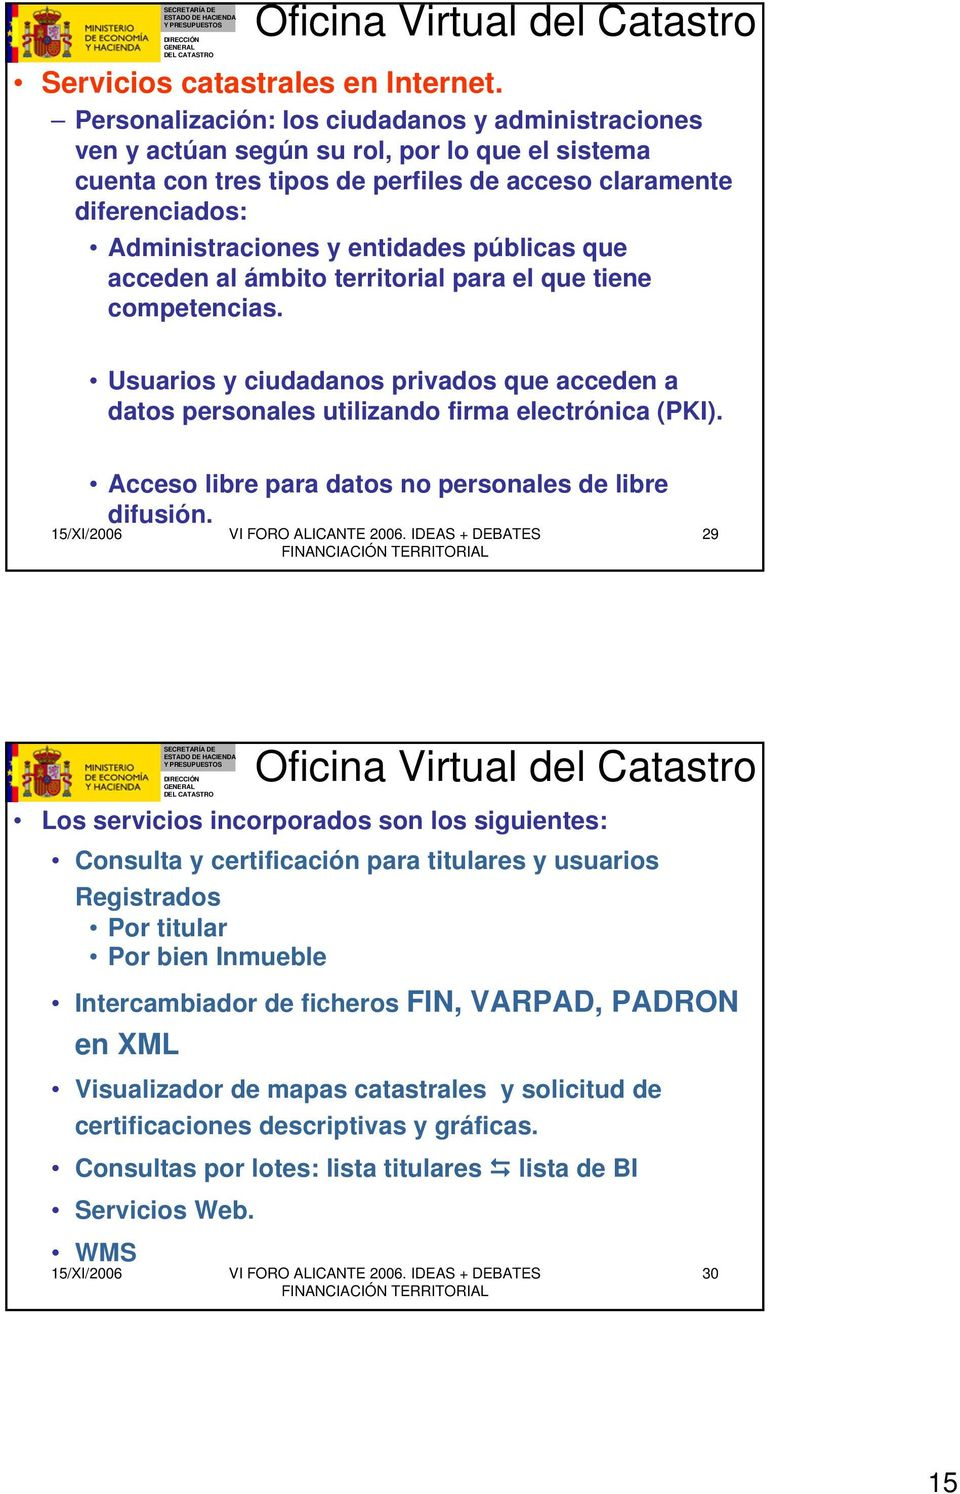 El catastro unificado la cartograf a a catastral pdf for Oficina catastro alicante